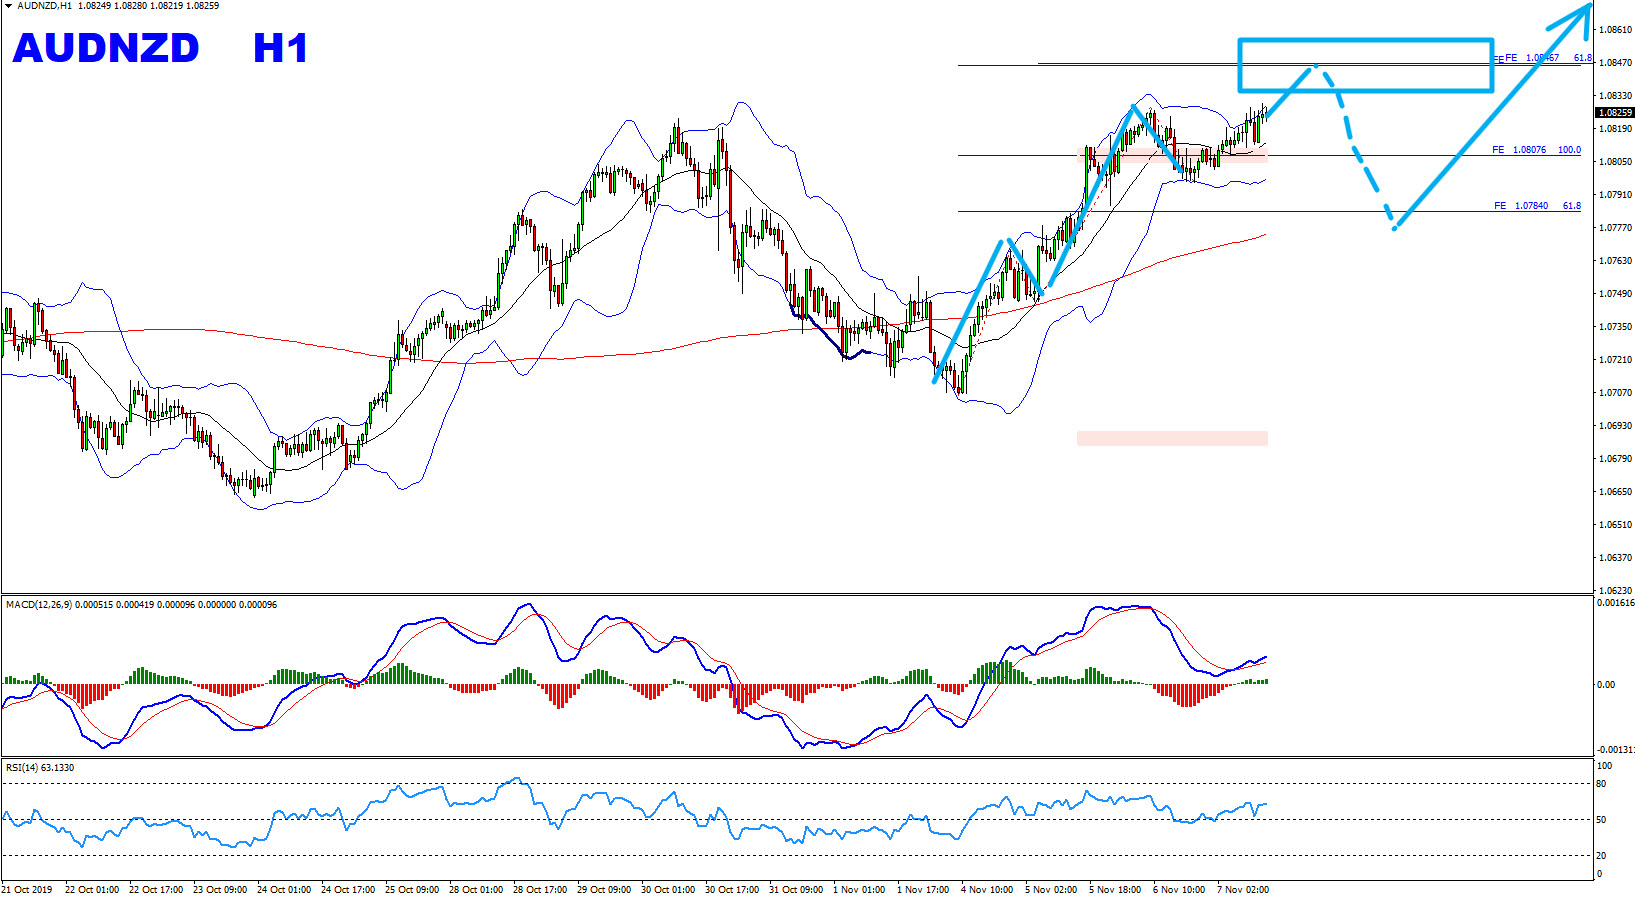 AUDNZD Double Wave Provides Short Term Sell Trade Setup